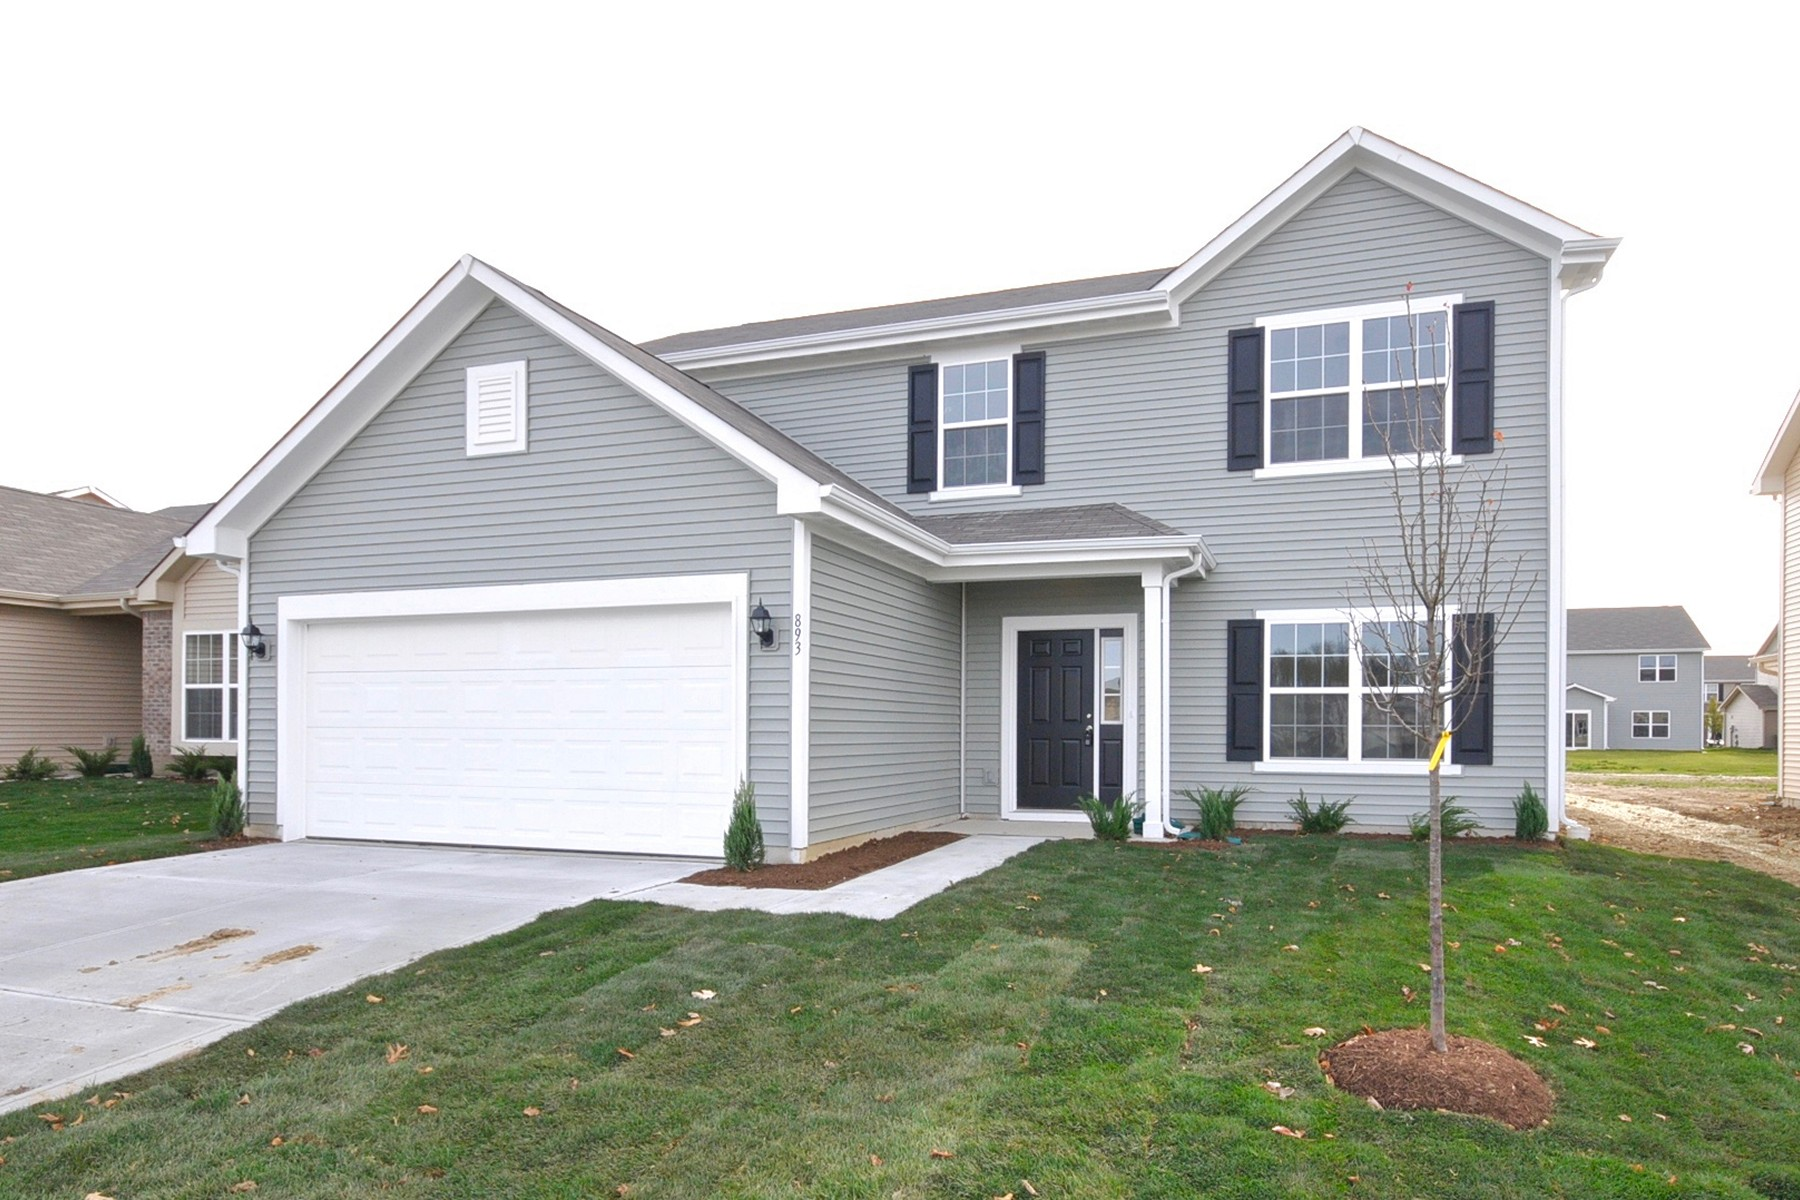 Casa Unifamiliar por un Alquiler en Upgraded Home For Lease 893 Burntwood Way Westfield, Indiana 46074 Estados Unidos